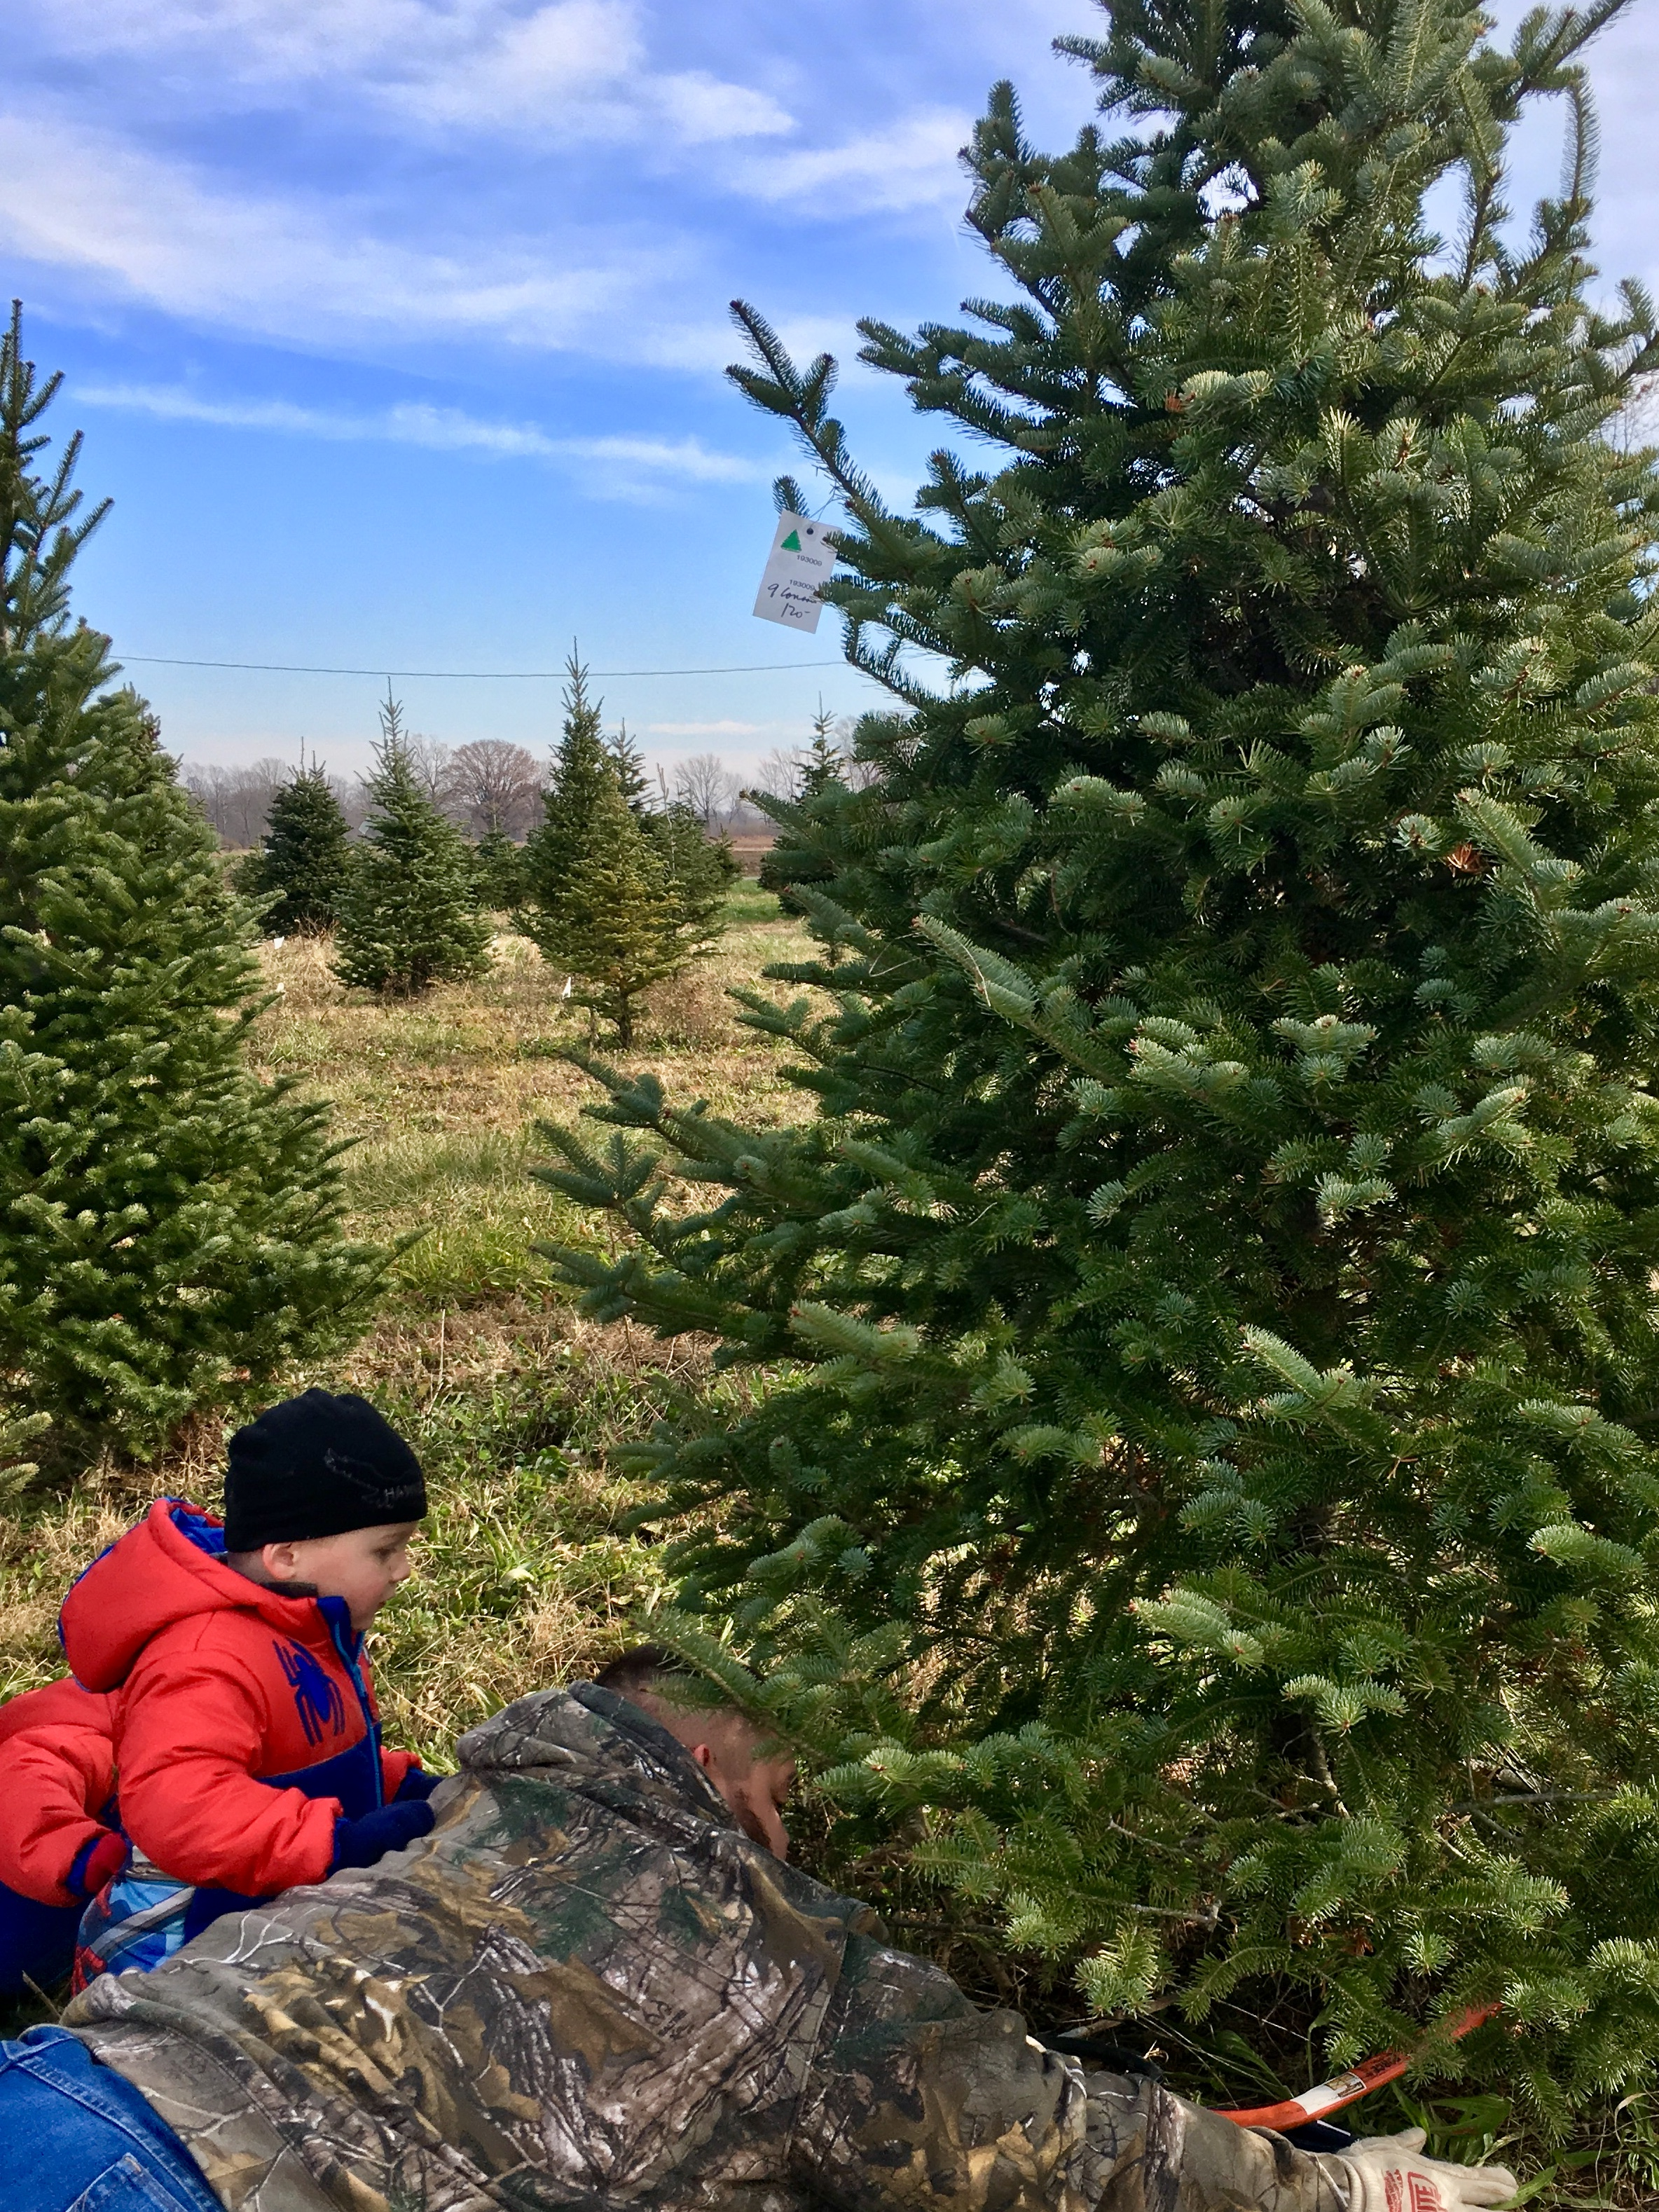 Cutting Your Own Christmas Tree - Circle City Adventure Kids